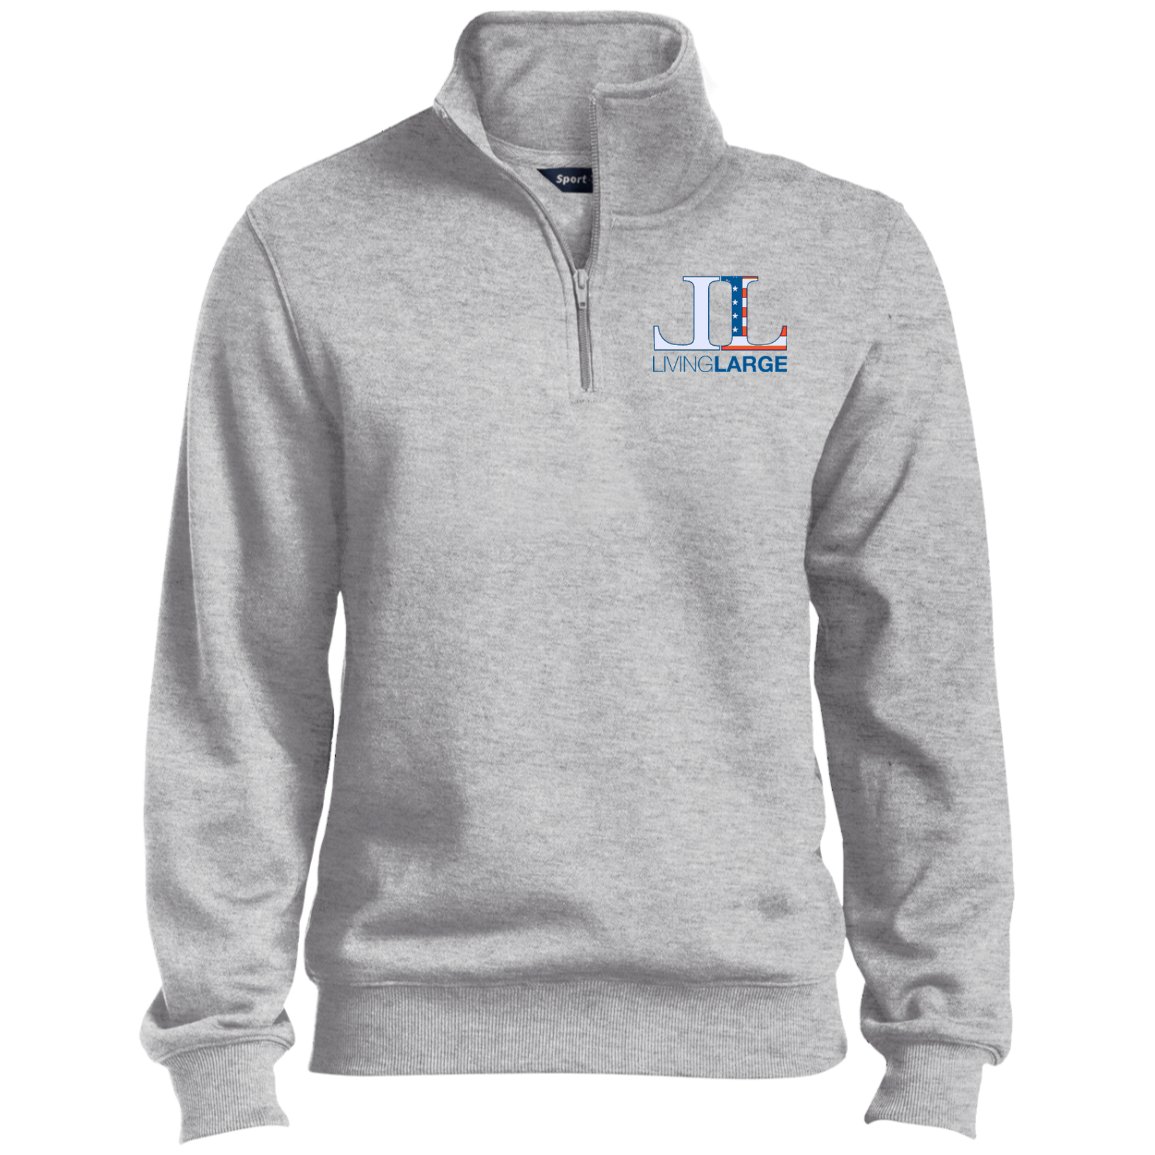 Living Large - The Simply Sporty All American Tall 1/4 Zip Sweatshirt